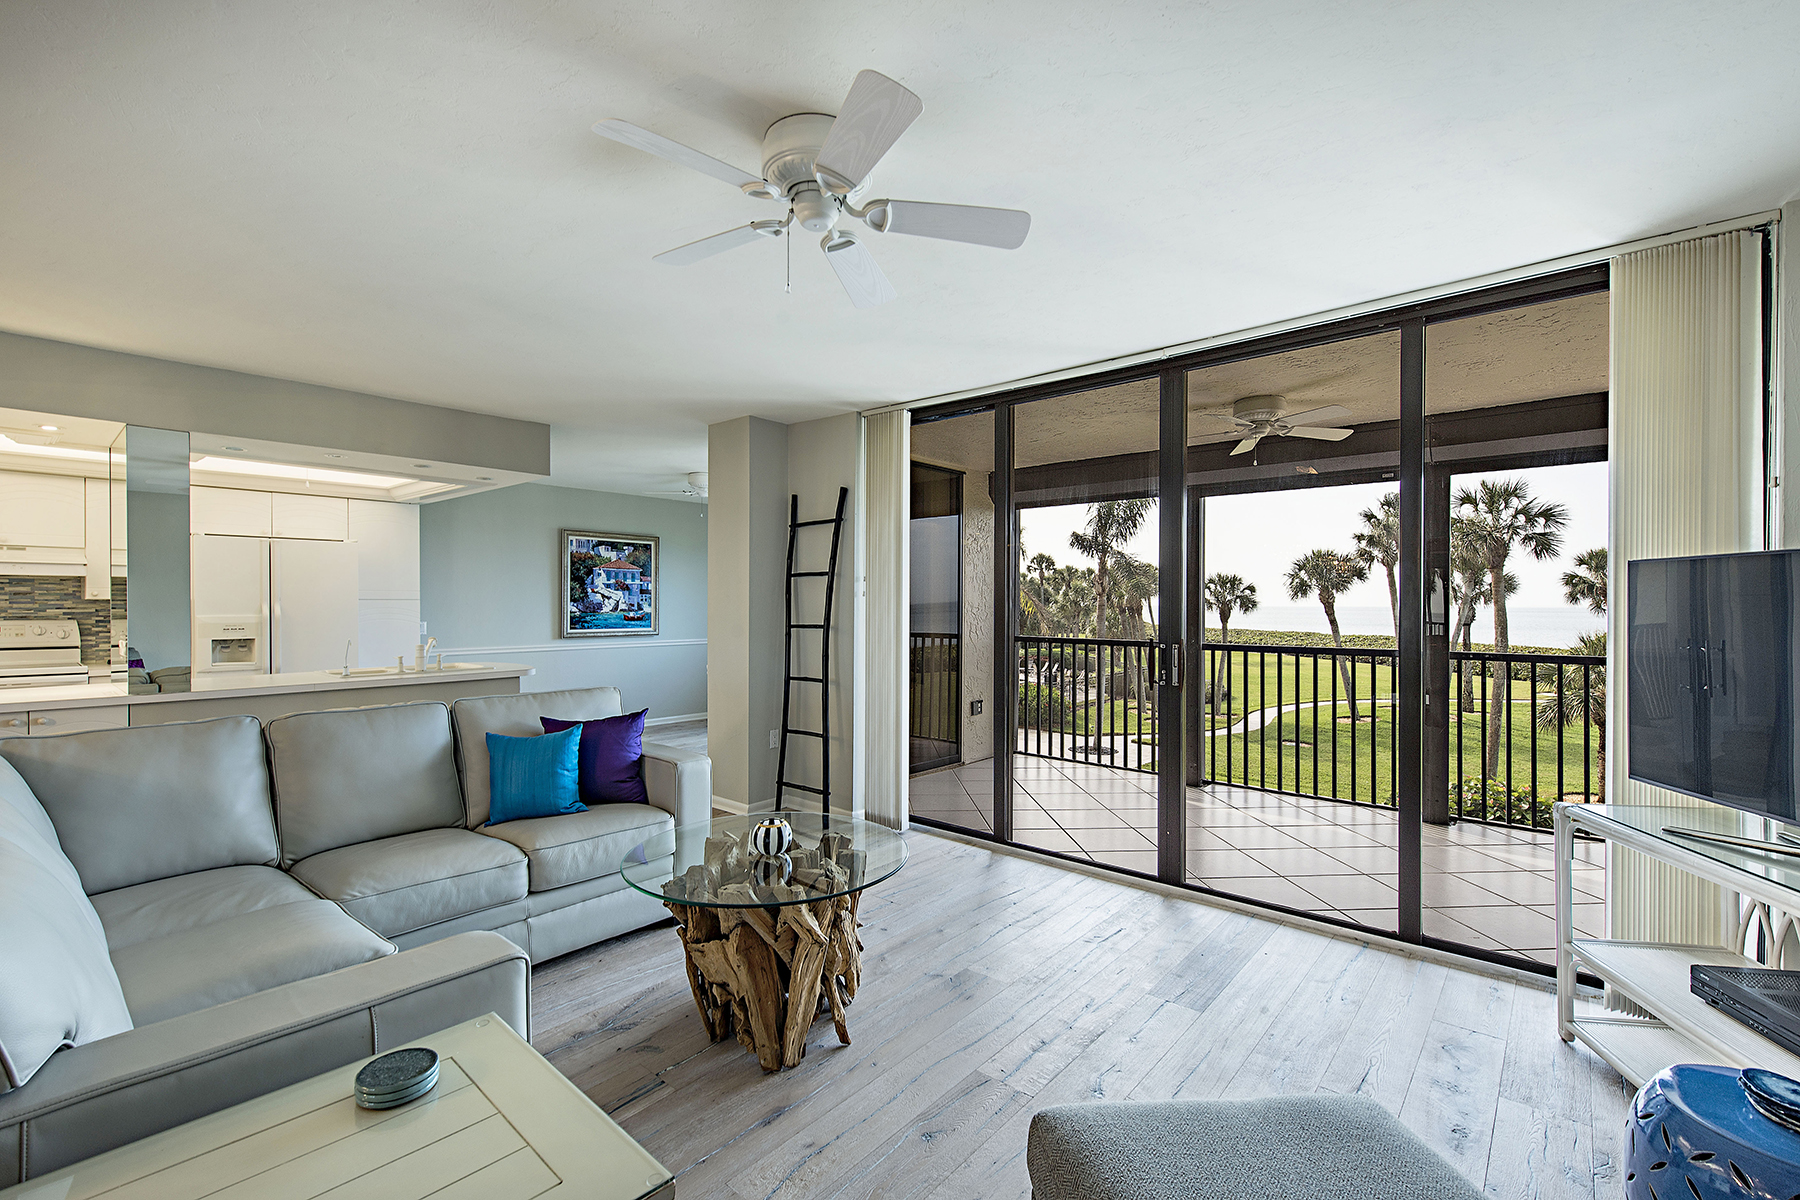 Condominium for Sale at VANDERBILT BEACH - VANDERBILT GULF SHORE 10951 Gulf Shore Dr 104 Naples, Florida, 34108 United States